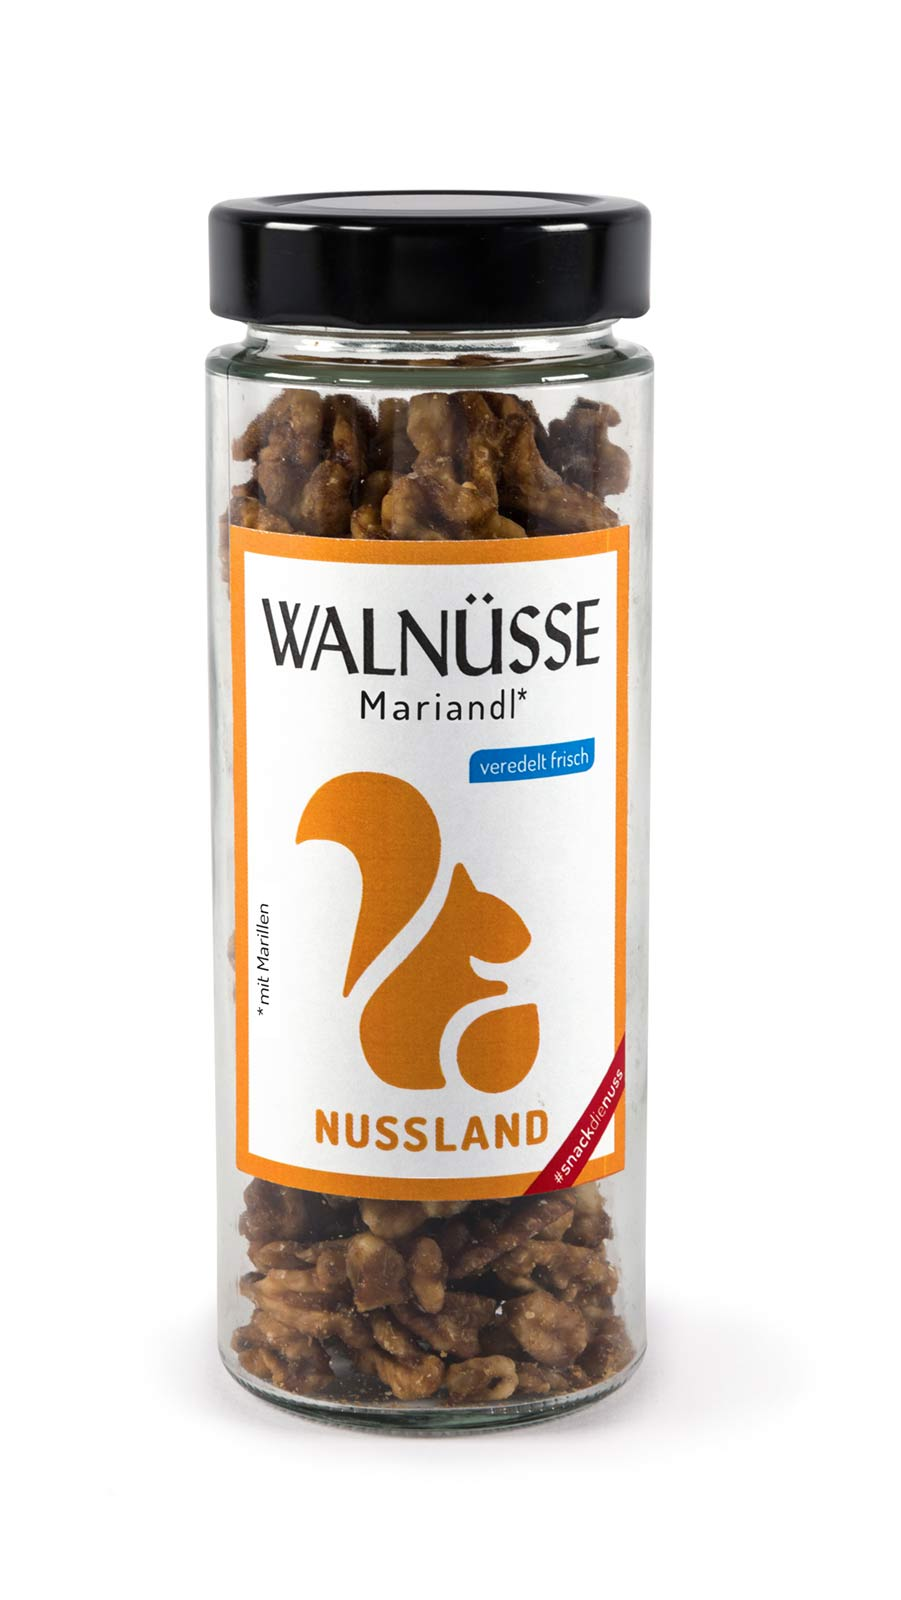 Walnuss-Snack 'Mariandl'